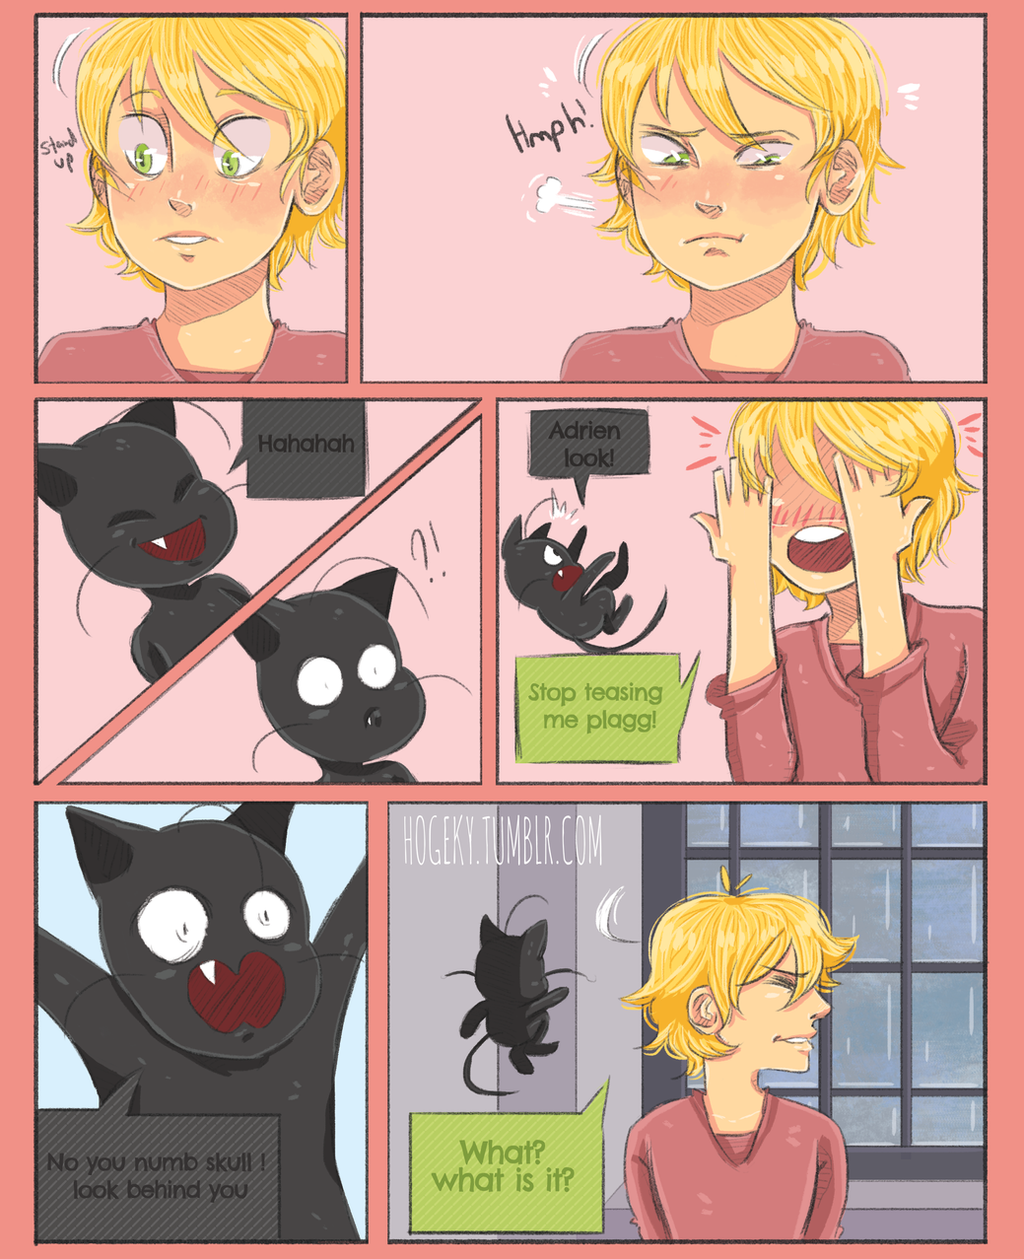 Unreceived PAGE 79 by Hogekys on DeviantArt